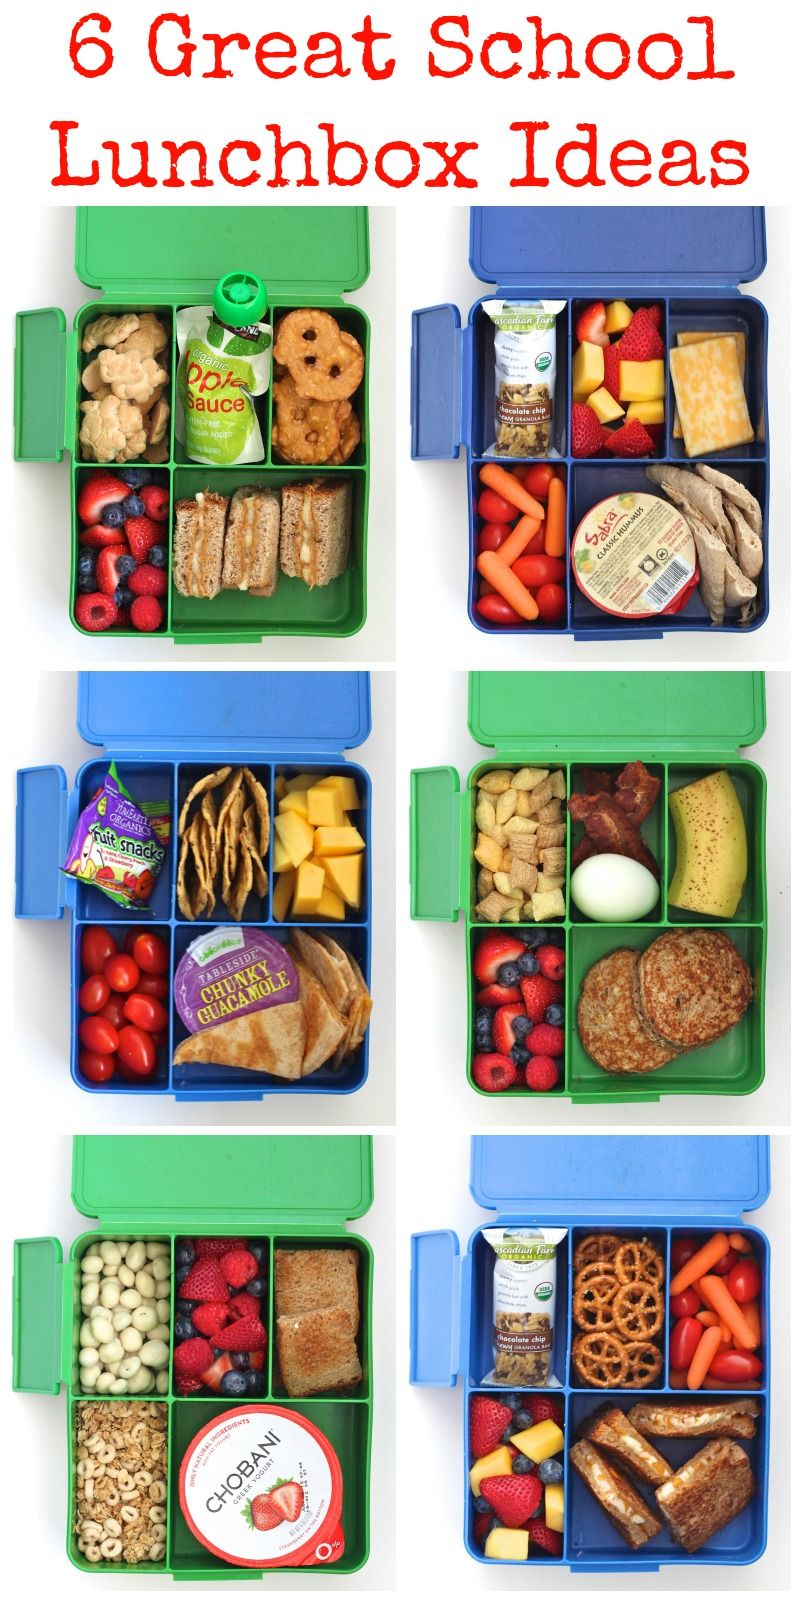 6 Great School Lunchbox Ideas | The BakerMama